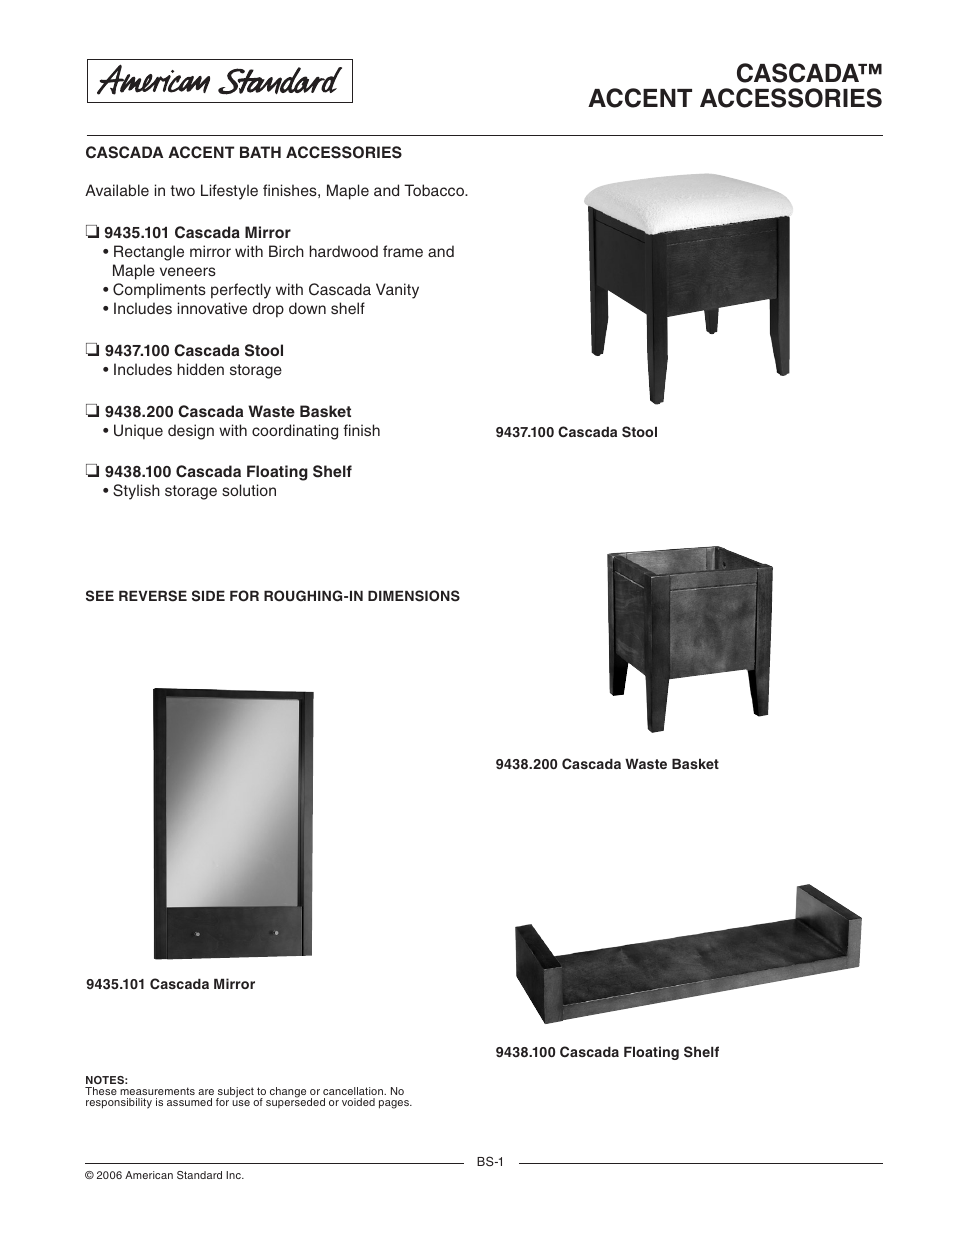 American Standard Cascada Accent Bath Accessories User Manual 2 Pages Also For